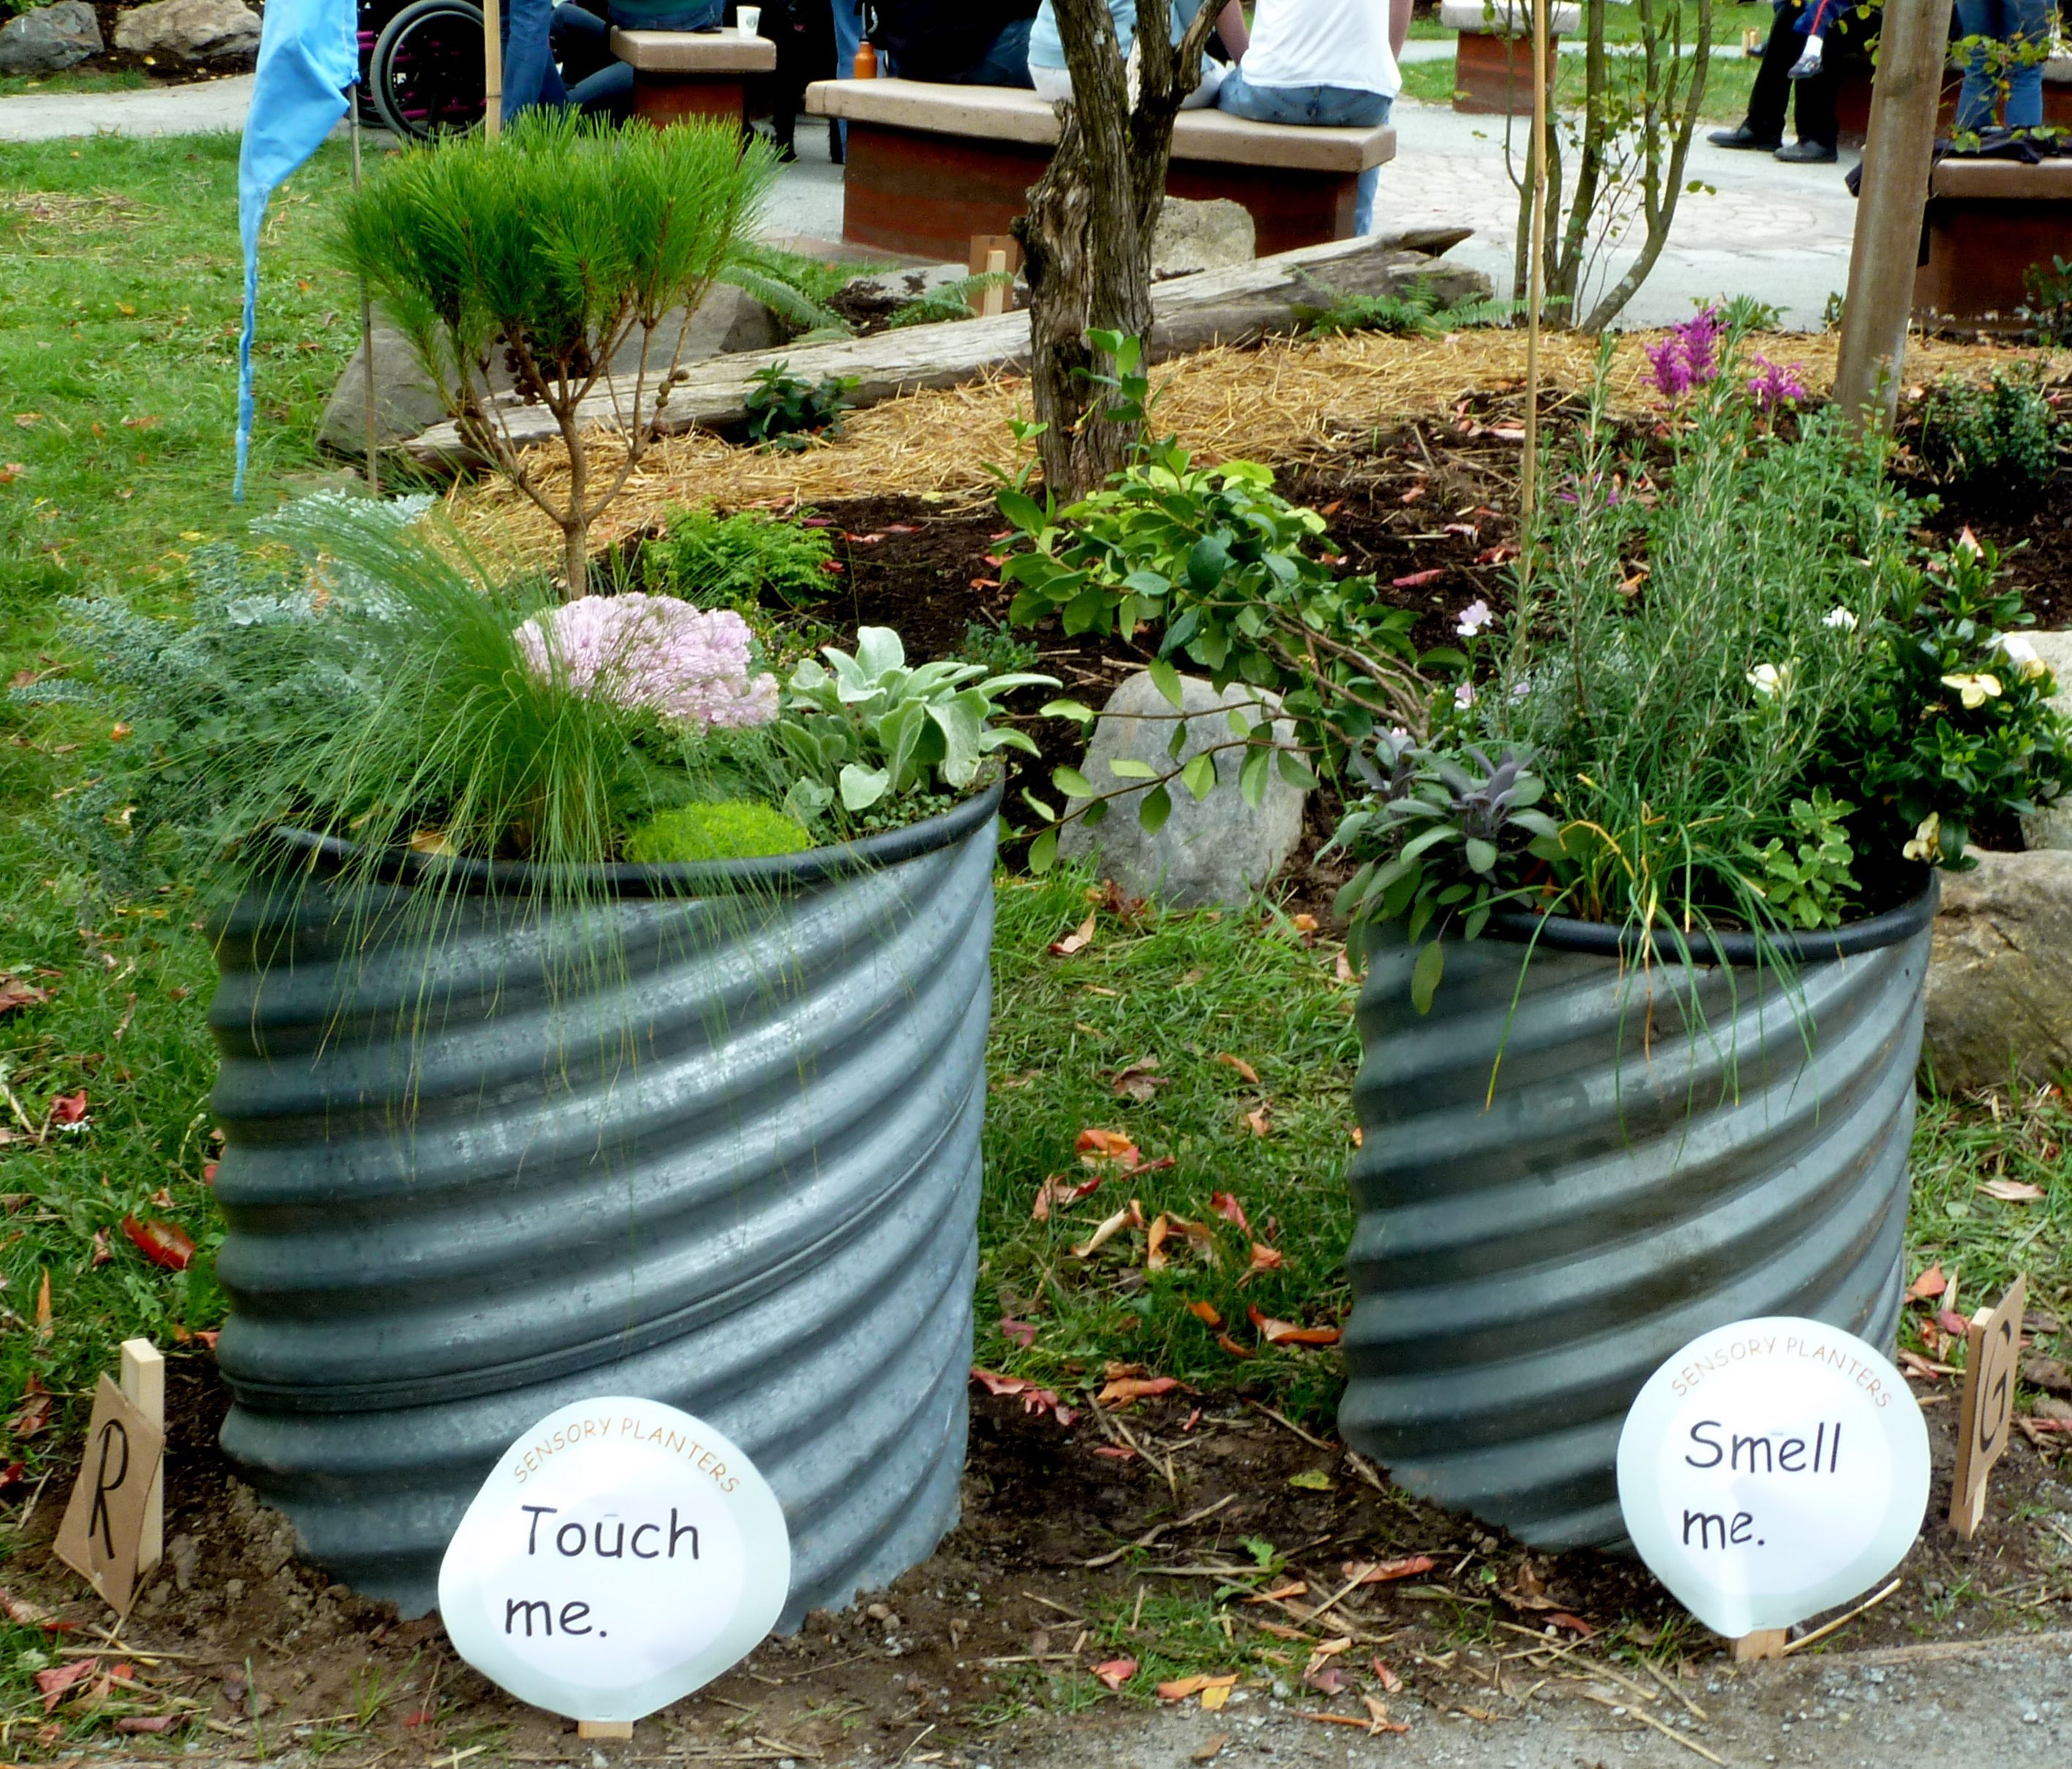 I Love The Idea Of Having Different Garden Beds Barrels For The